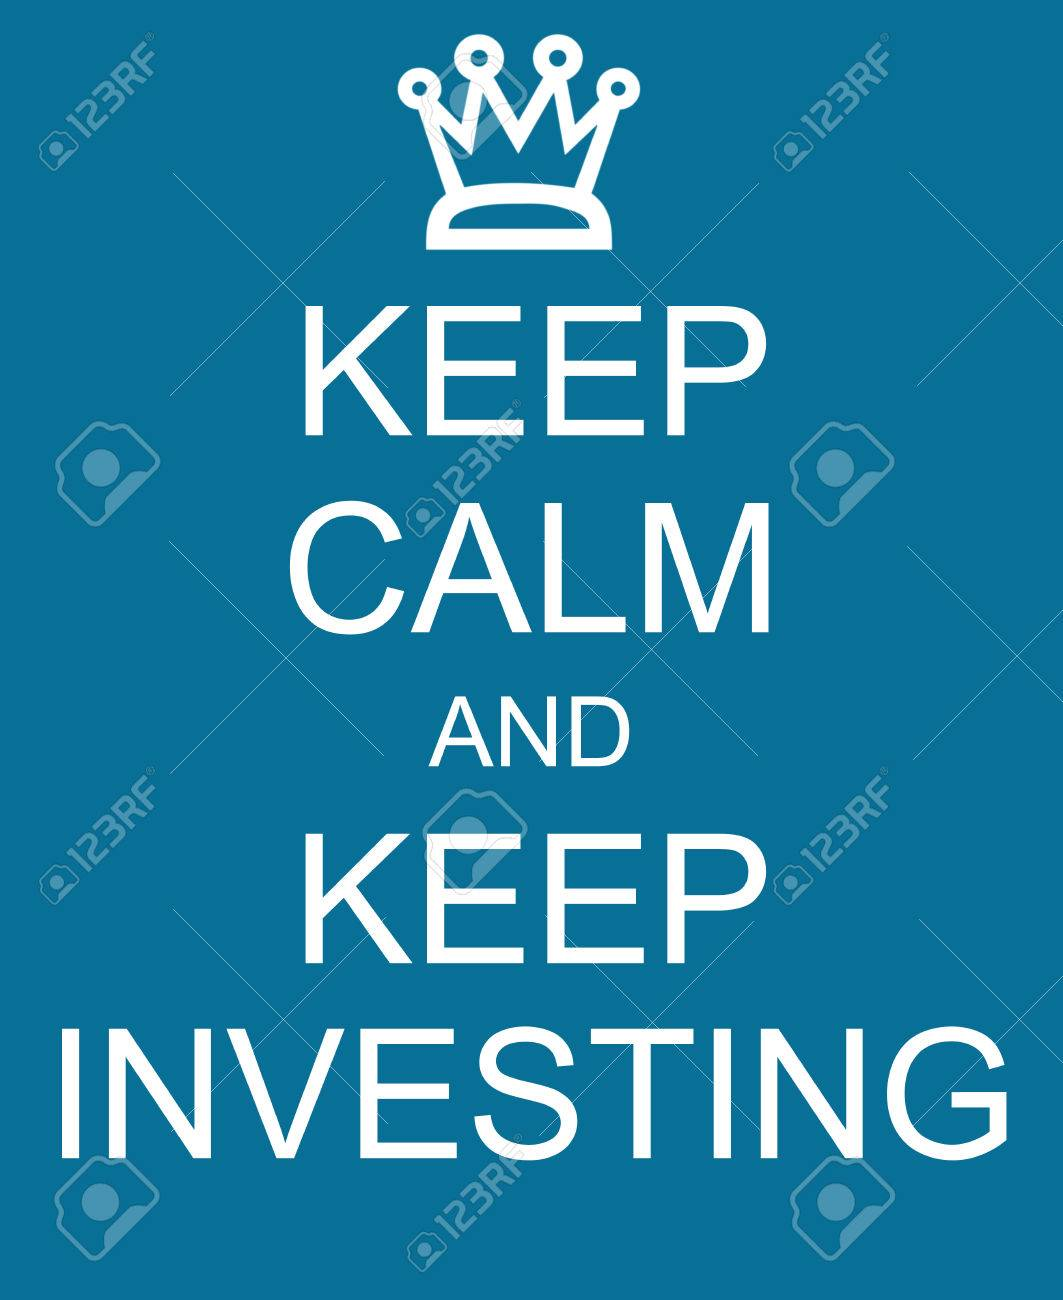 keep calm and keep investing with a crown written on a blue sign